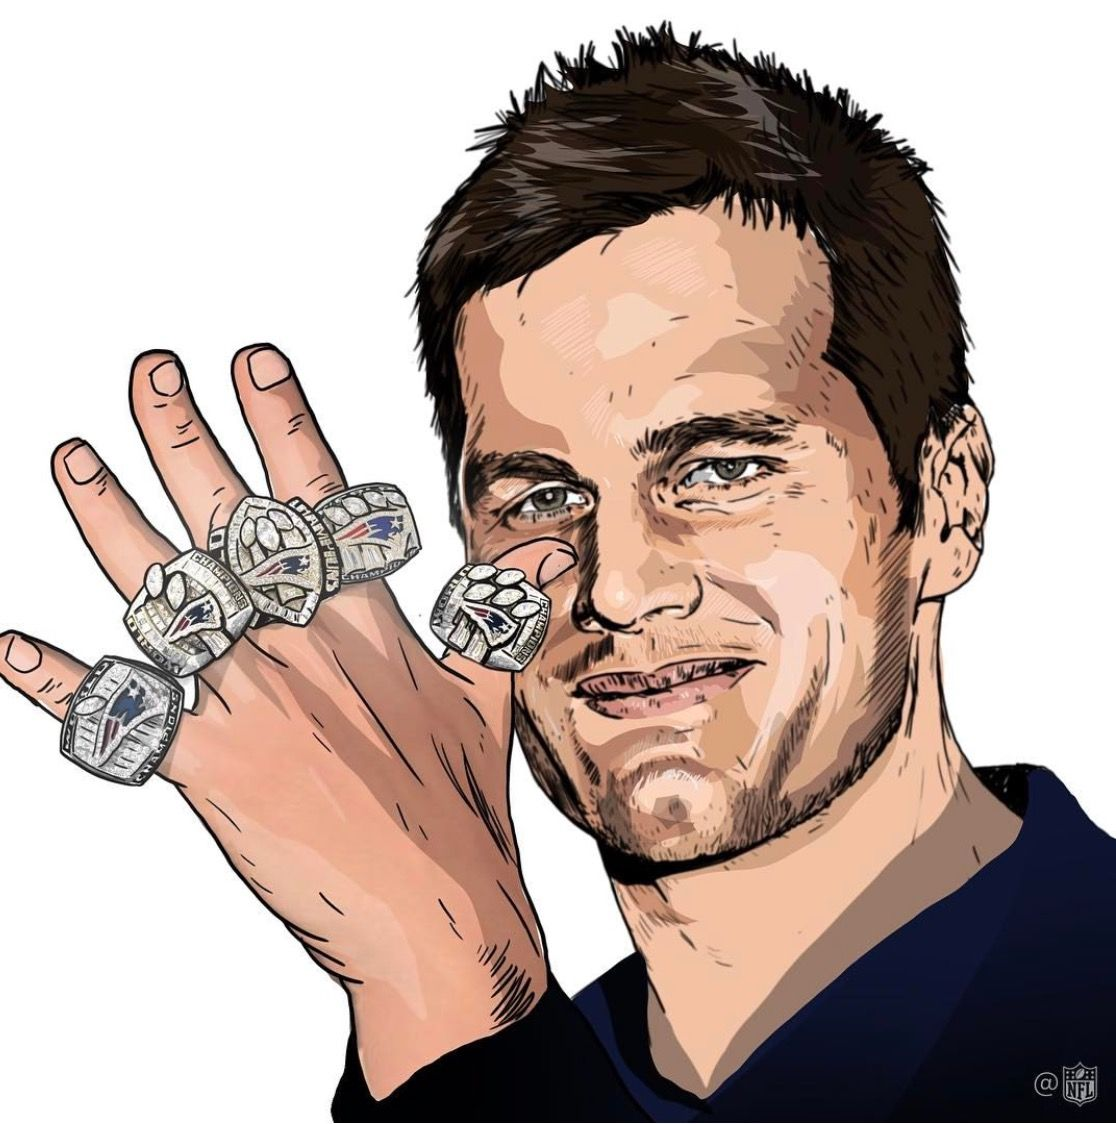 Hit Me With That 5 Rings Still More To Do Tom Brady New England Patriots New England Patriots Merchandise Patriots